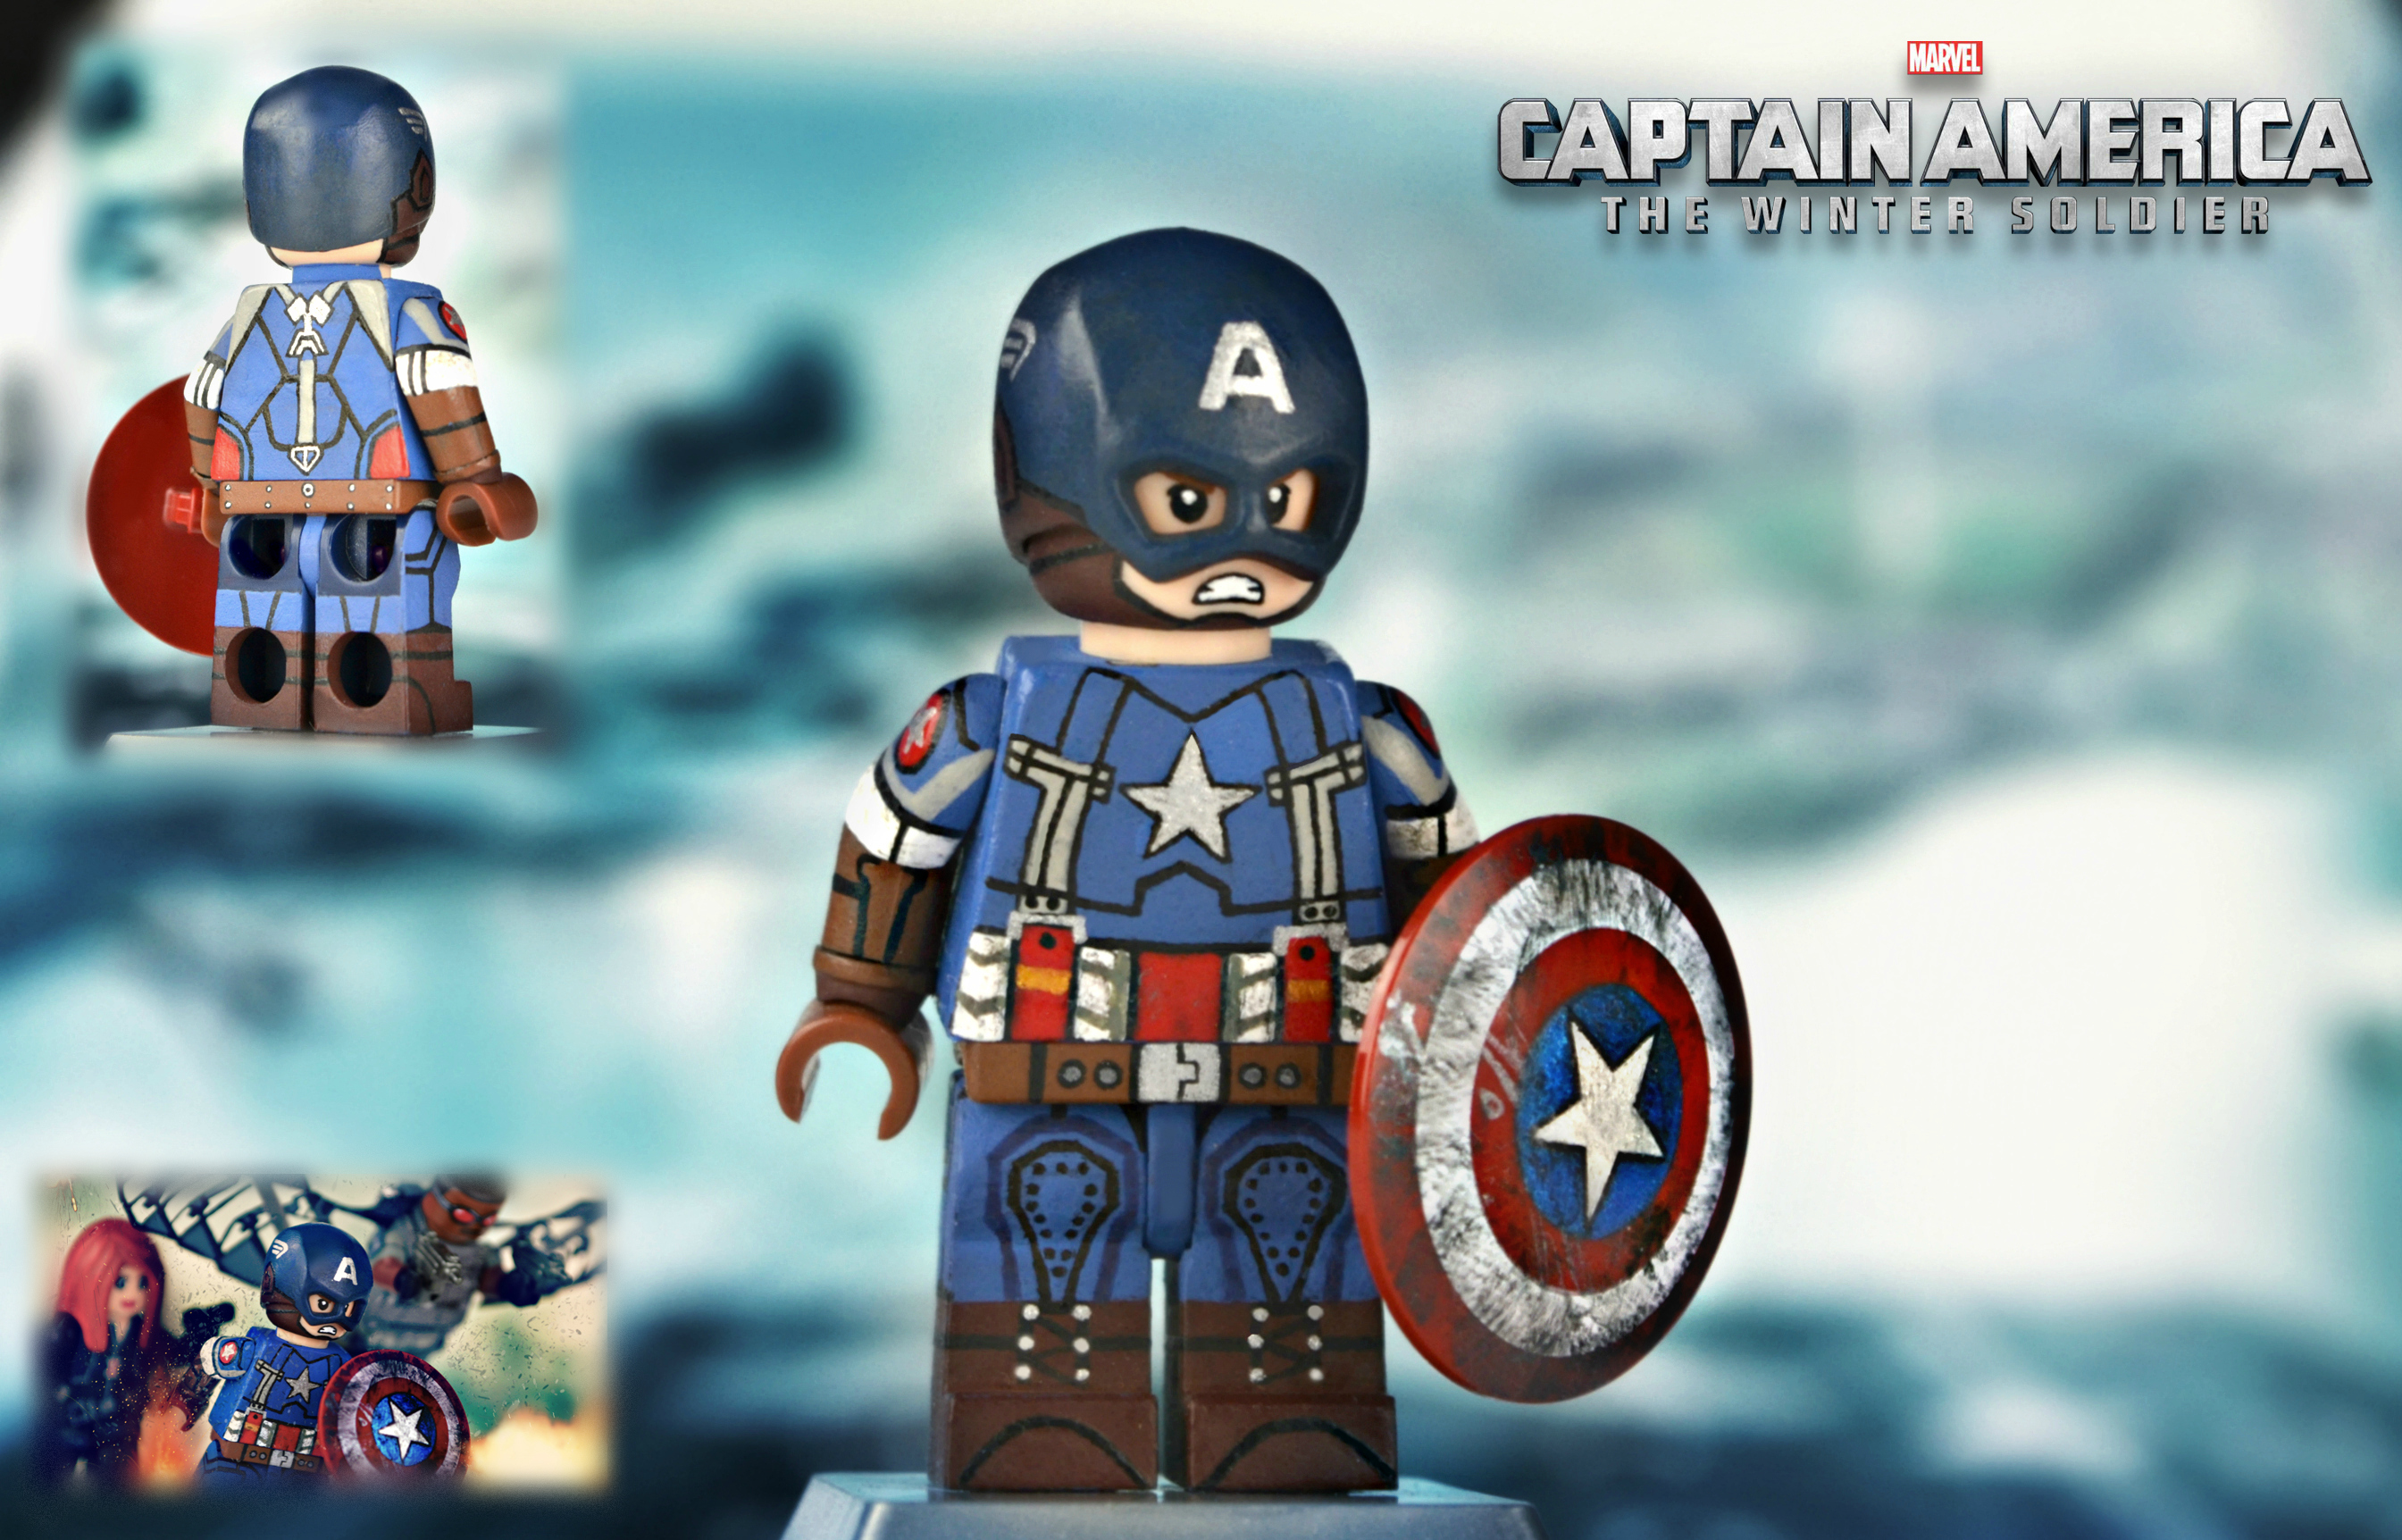 Lego captain america golden age suit flickr photo sharing - Lego capitaine america ...